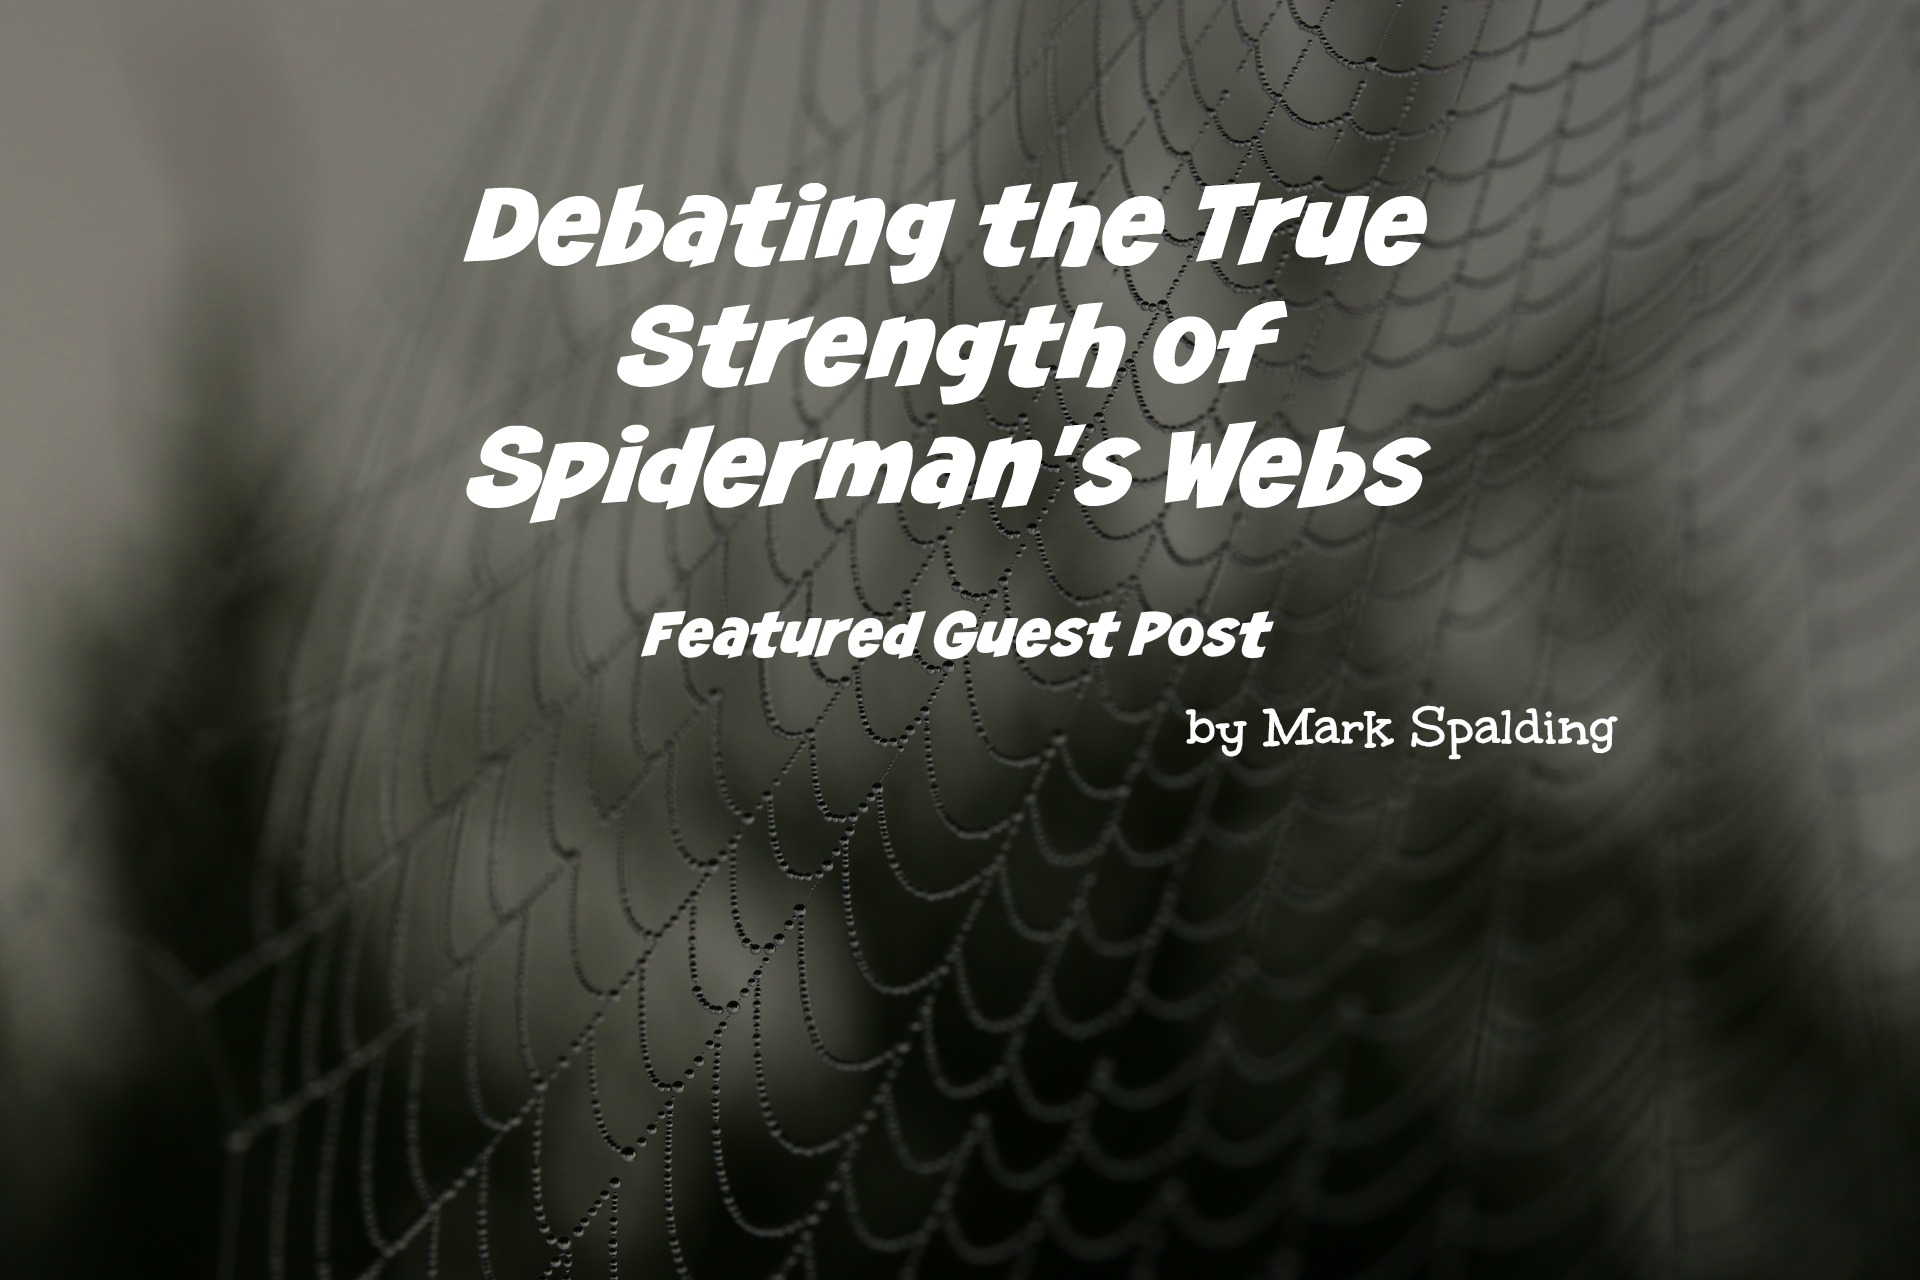 Debating the True Strength of Spiderman's Web